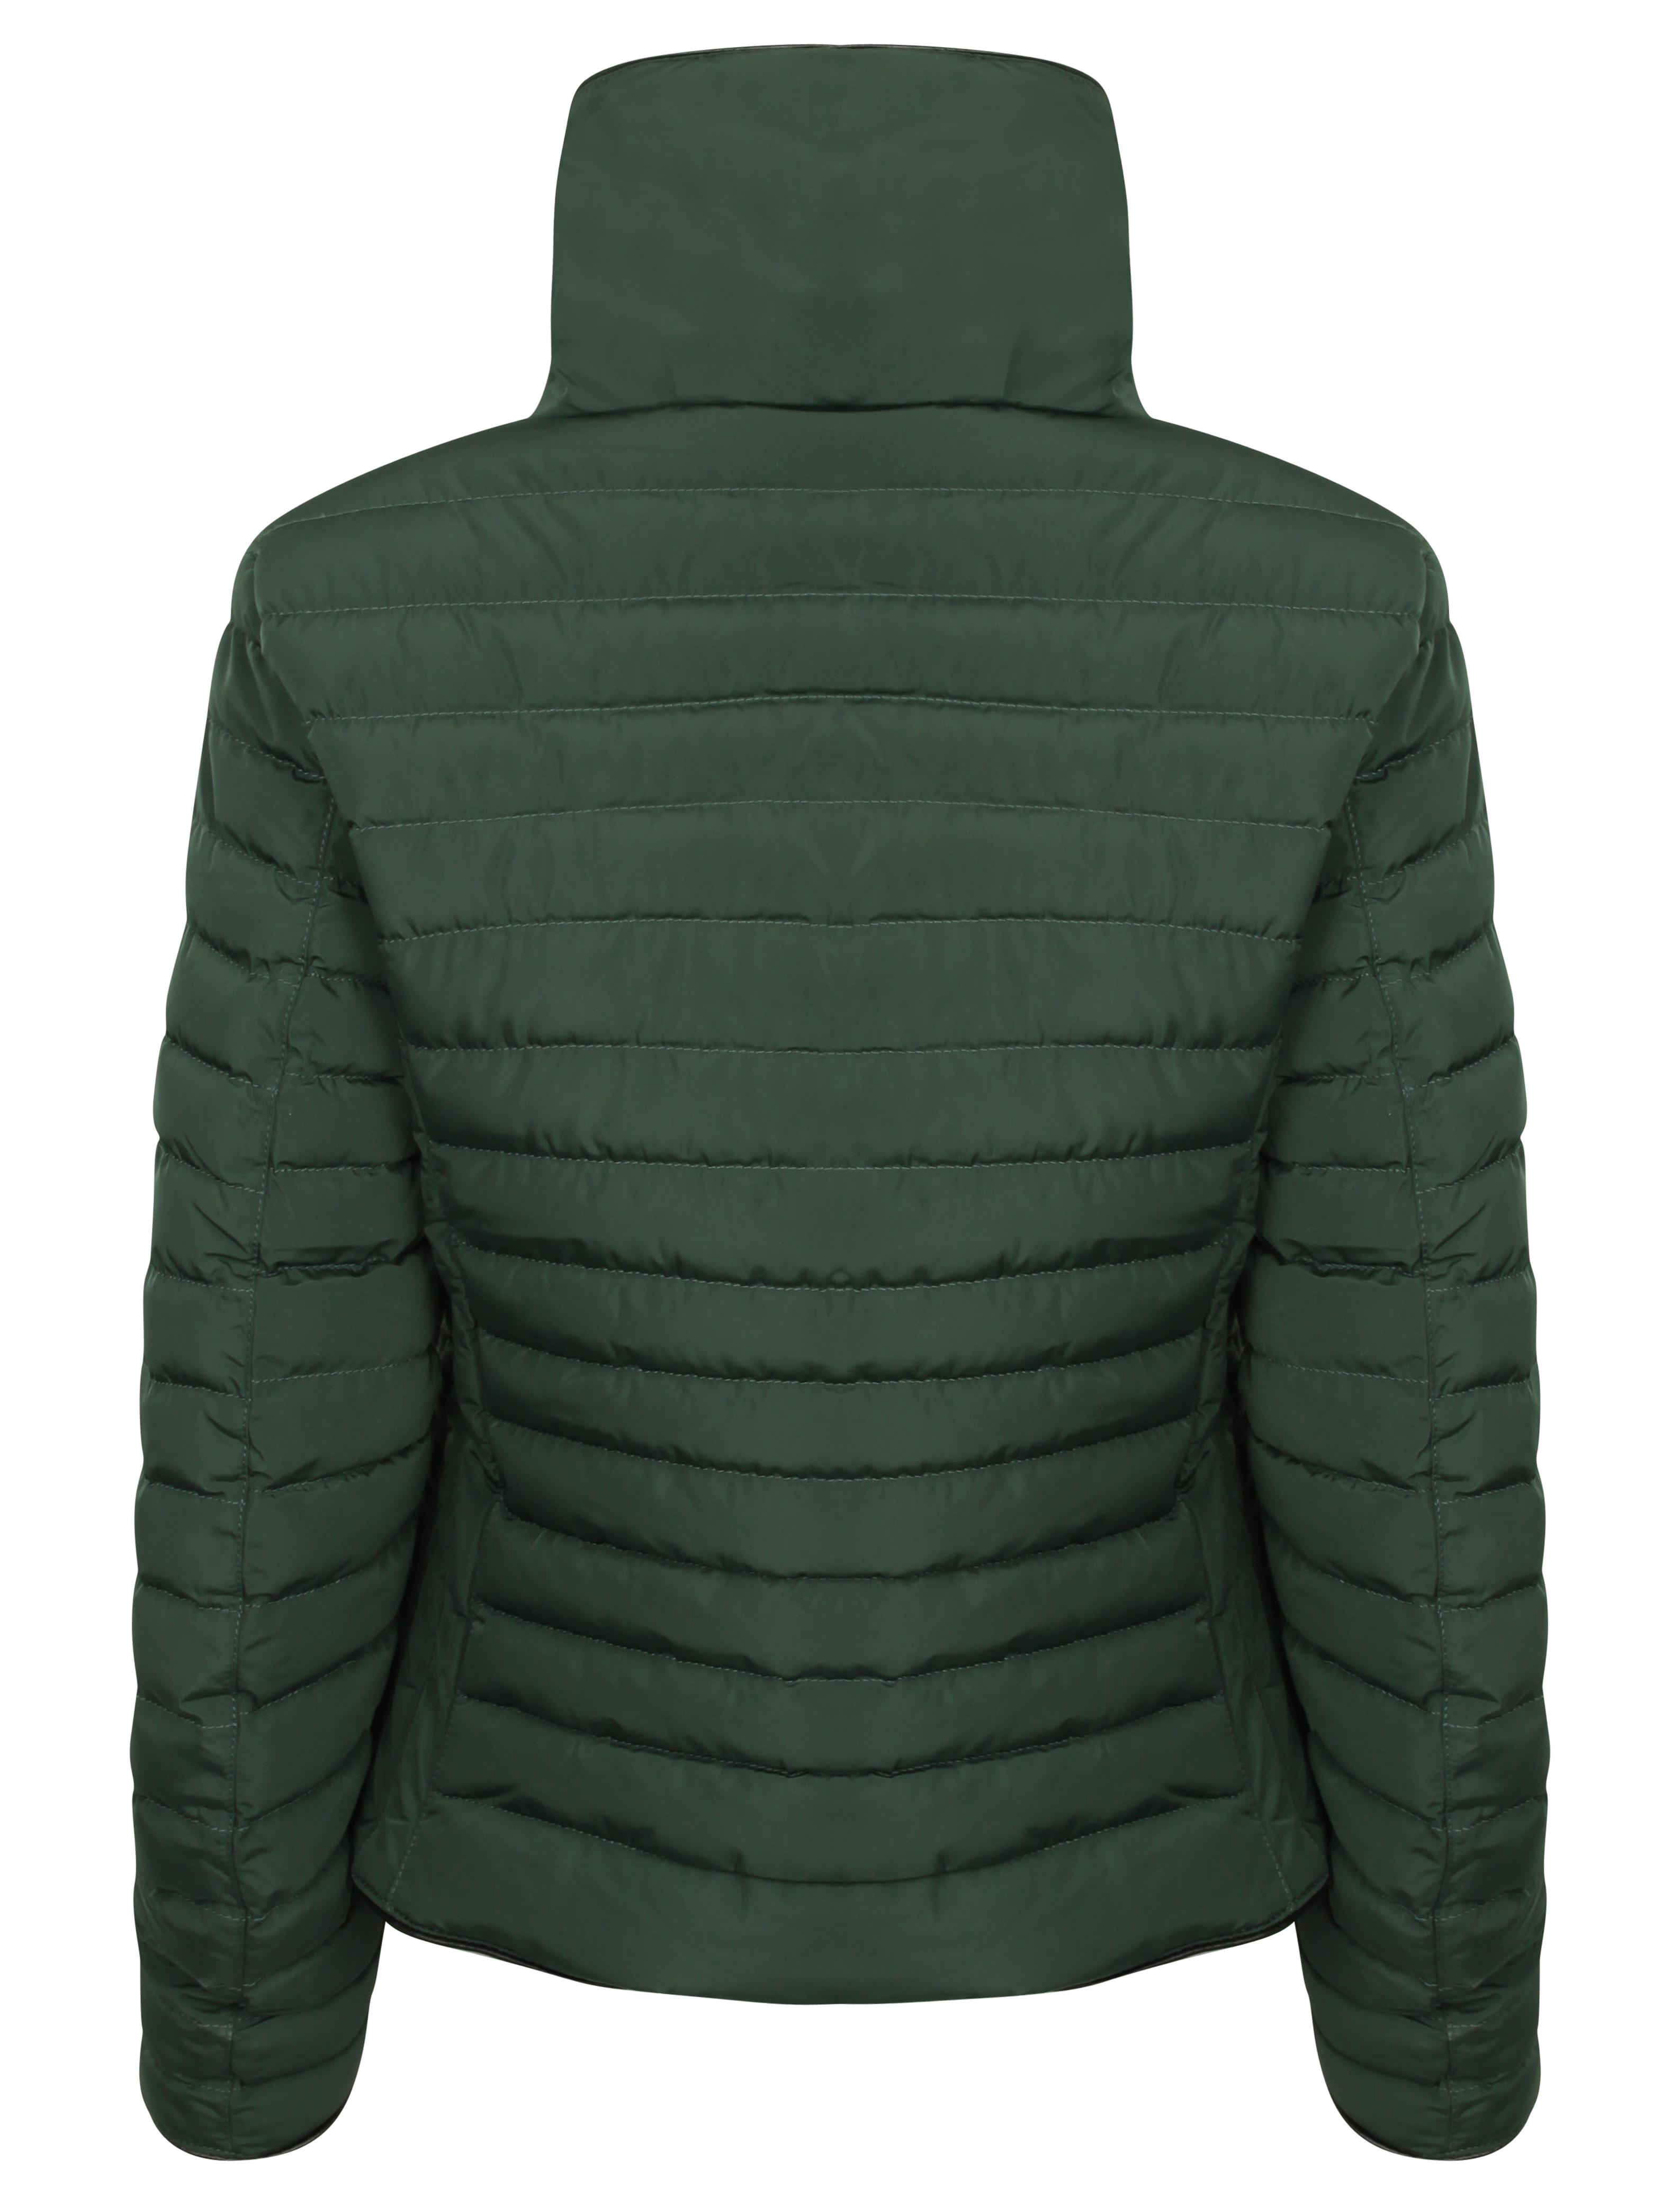 grand choix de ee3f0 a5064 Details about Ladies Jacket Tokyo Laundry Womens Coat Quilted Padded Bomber  Puffer Zip Lined